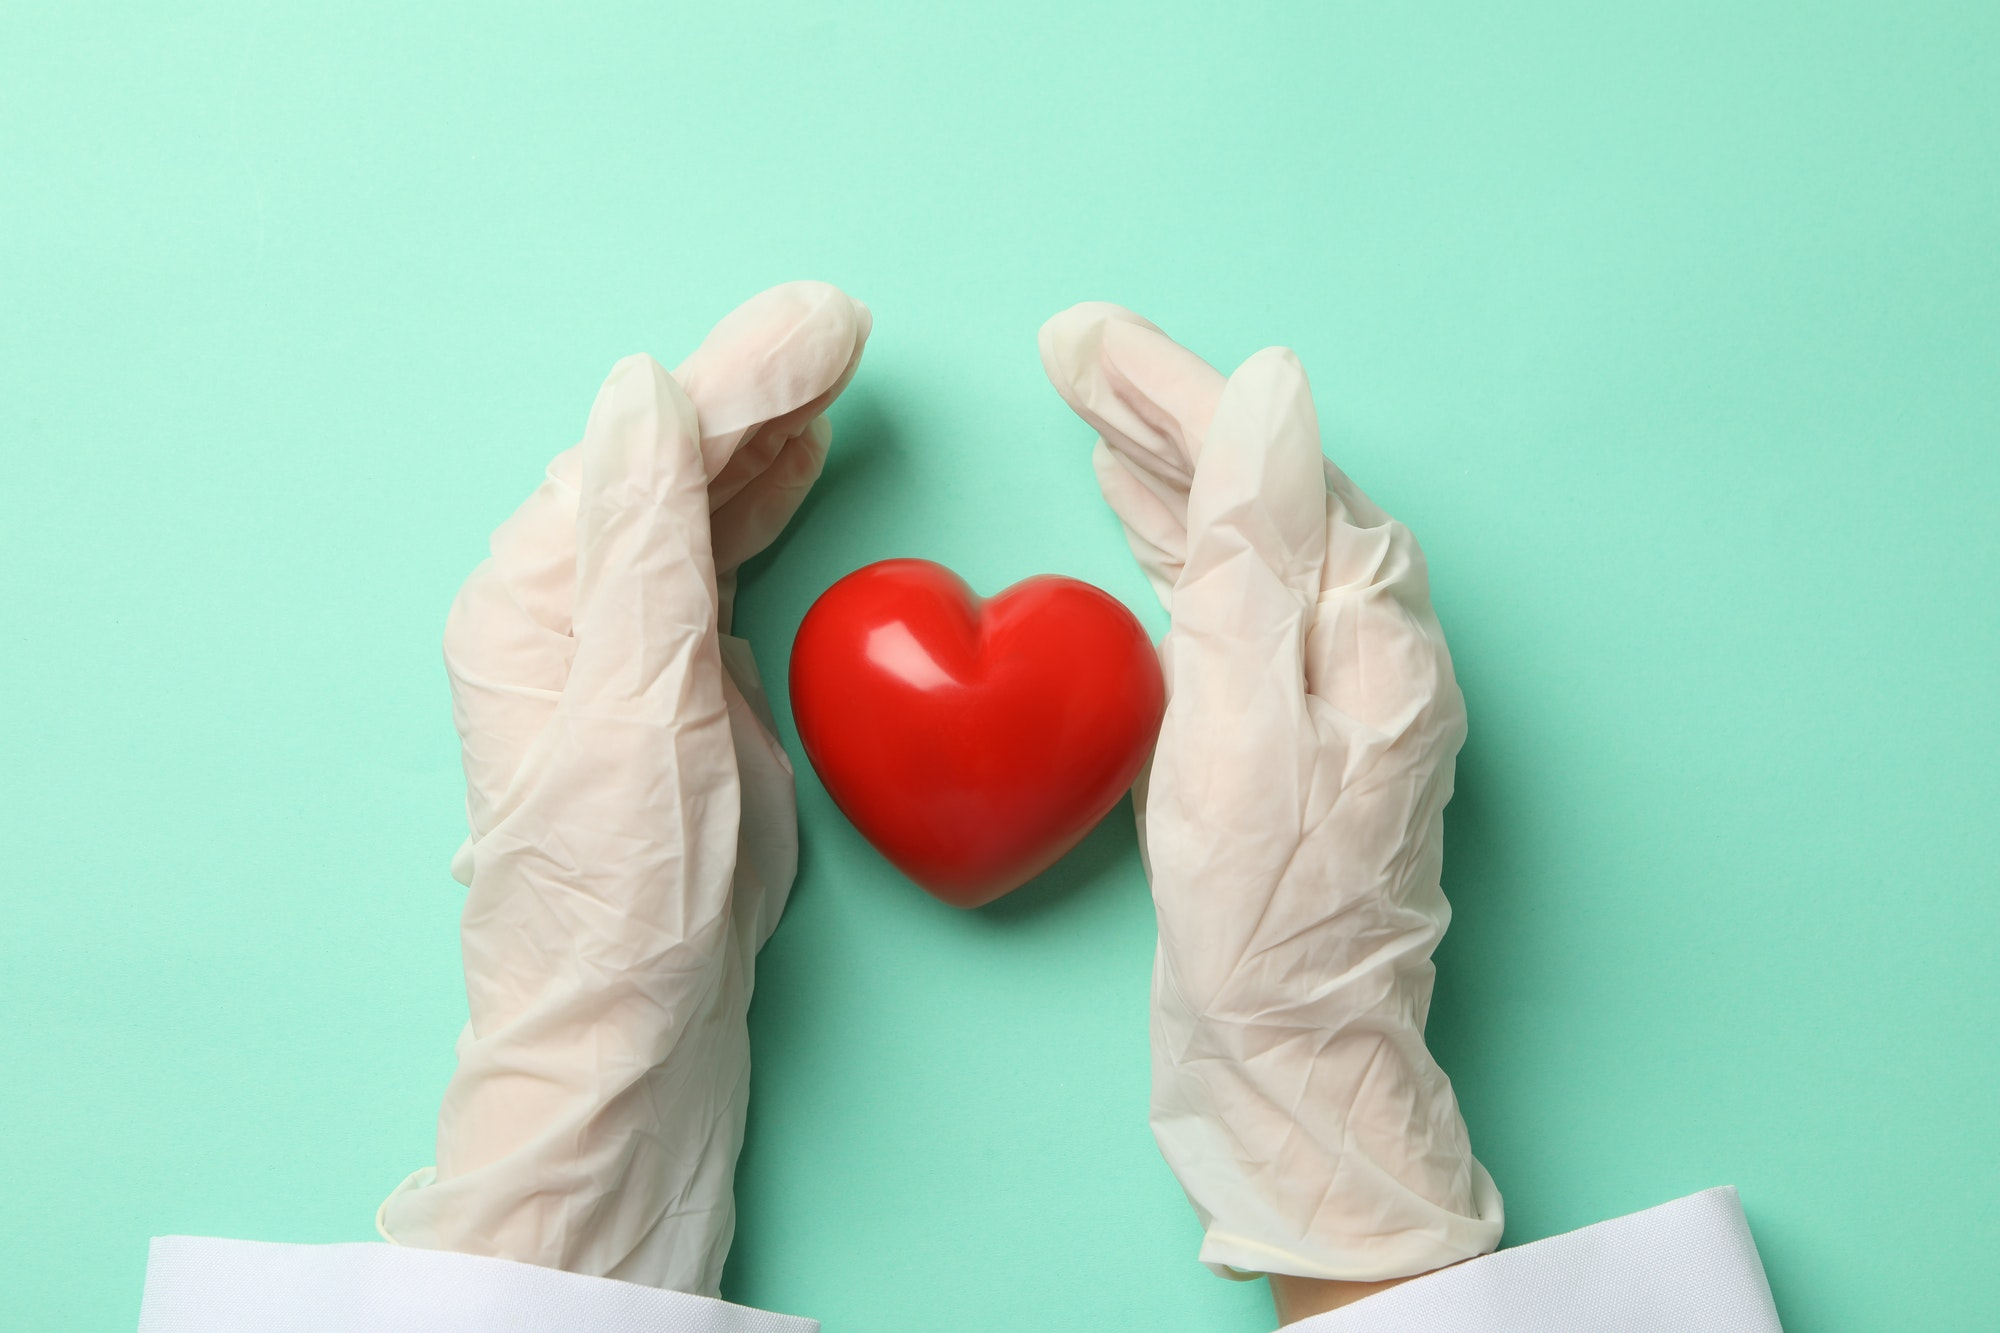 Female doctor hands in gloves and heart on mint background